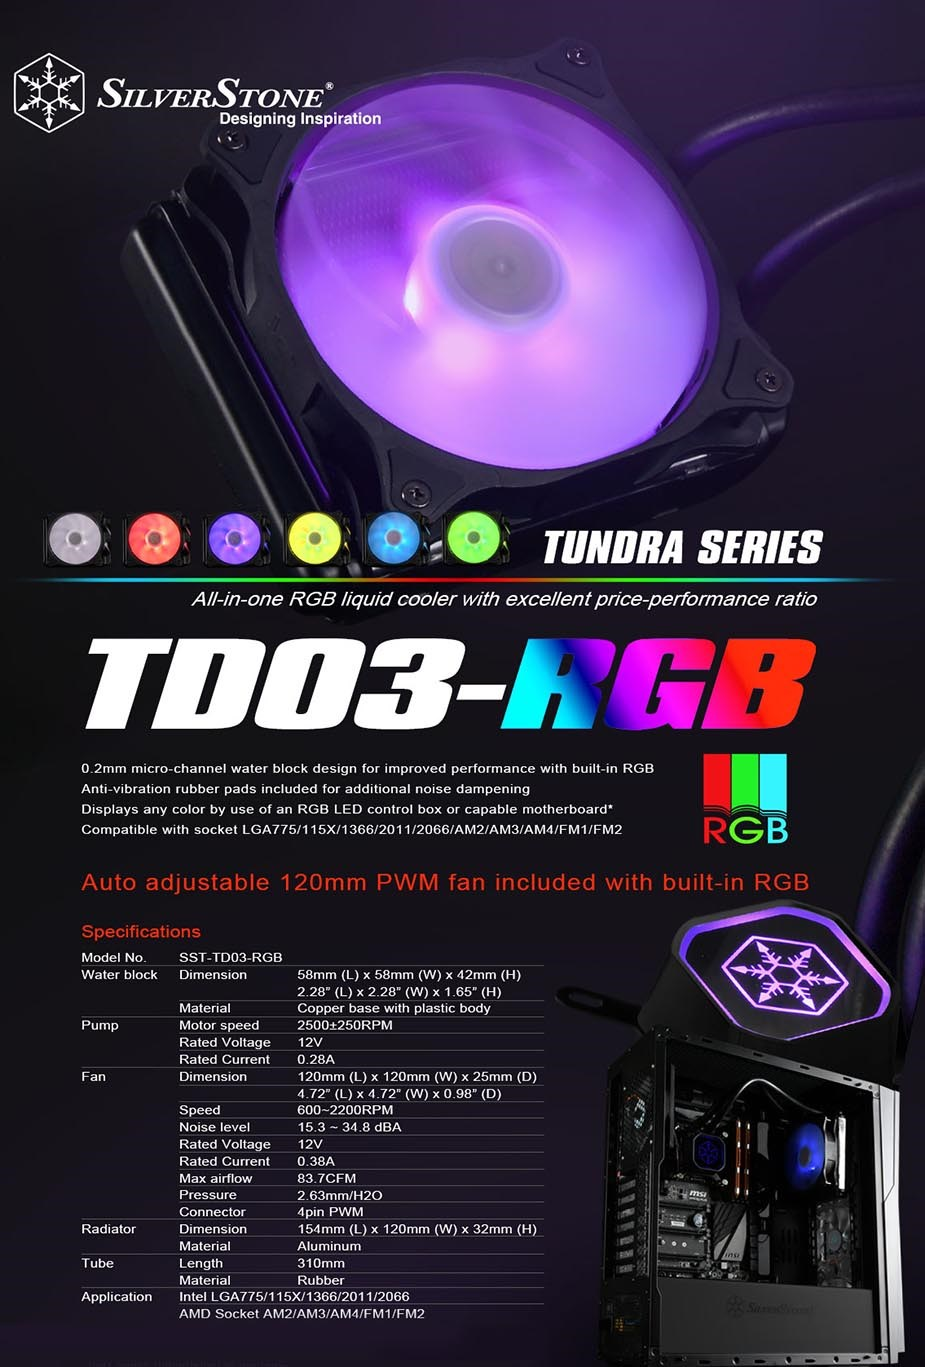 SilverStone Tundra TD03 RGB AIO 120mm CPU Cooler - Desktop Overview 1